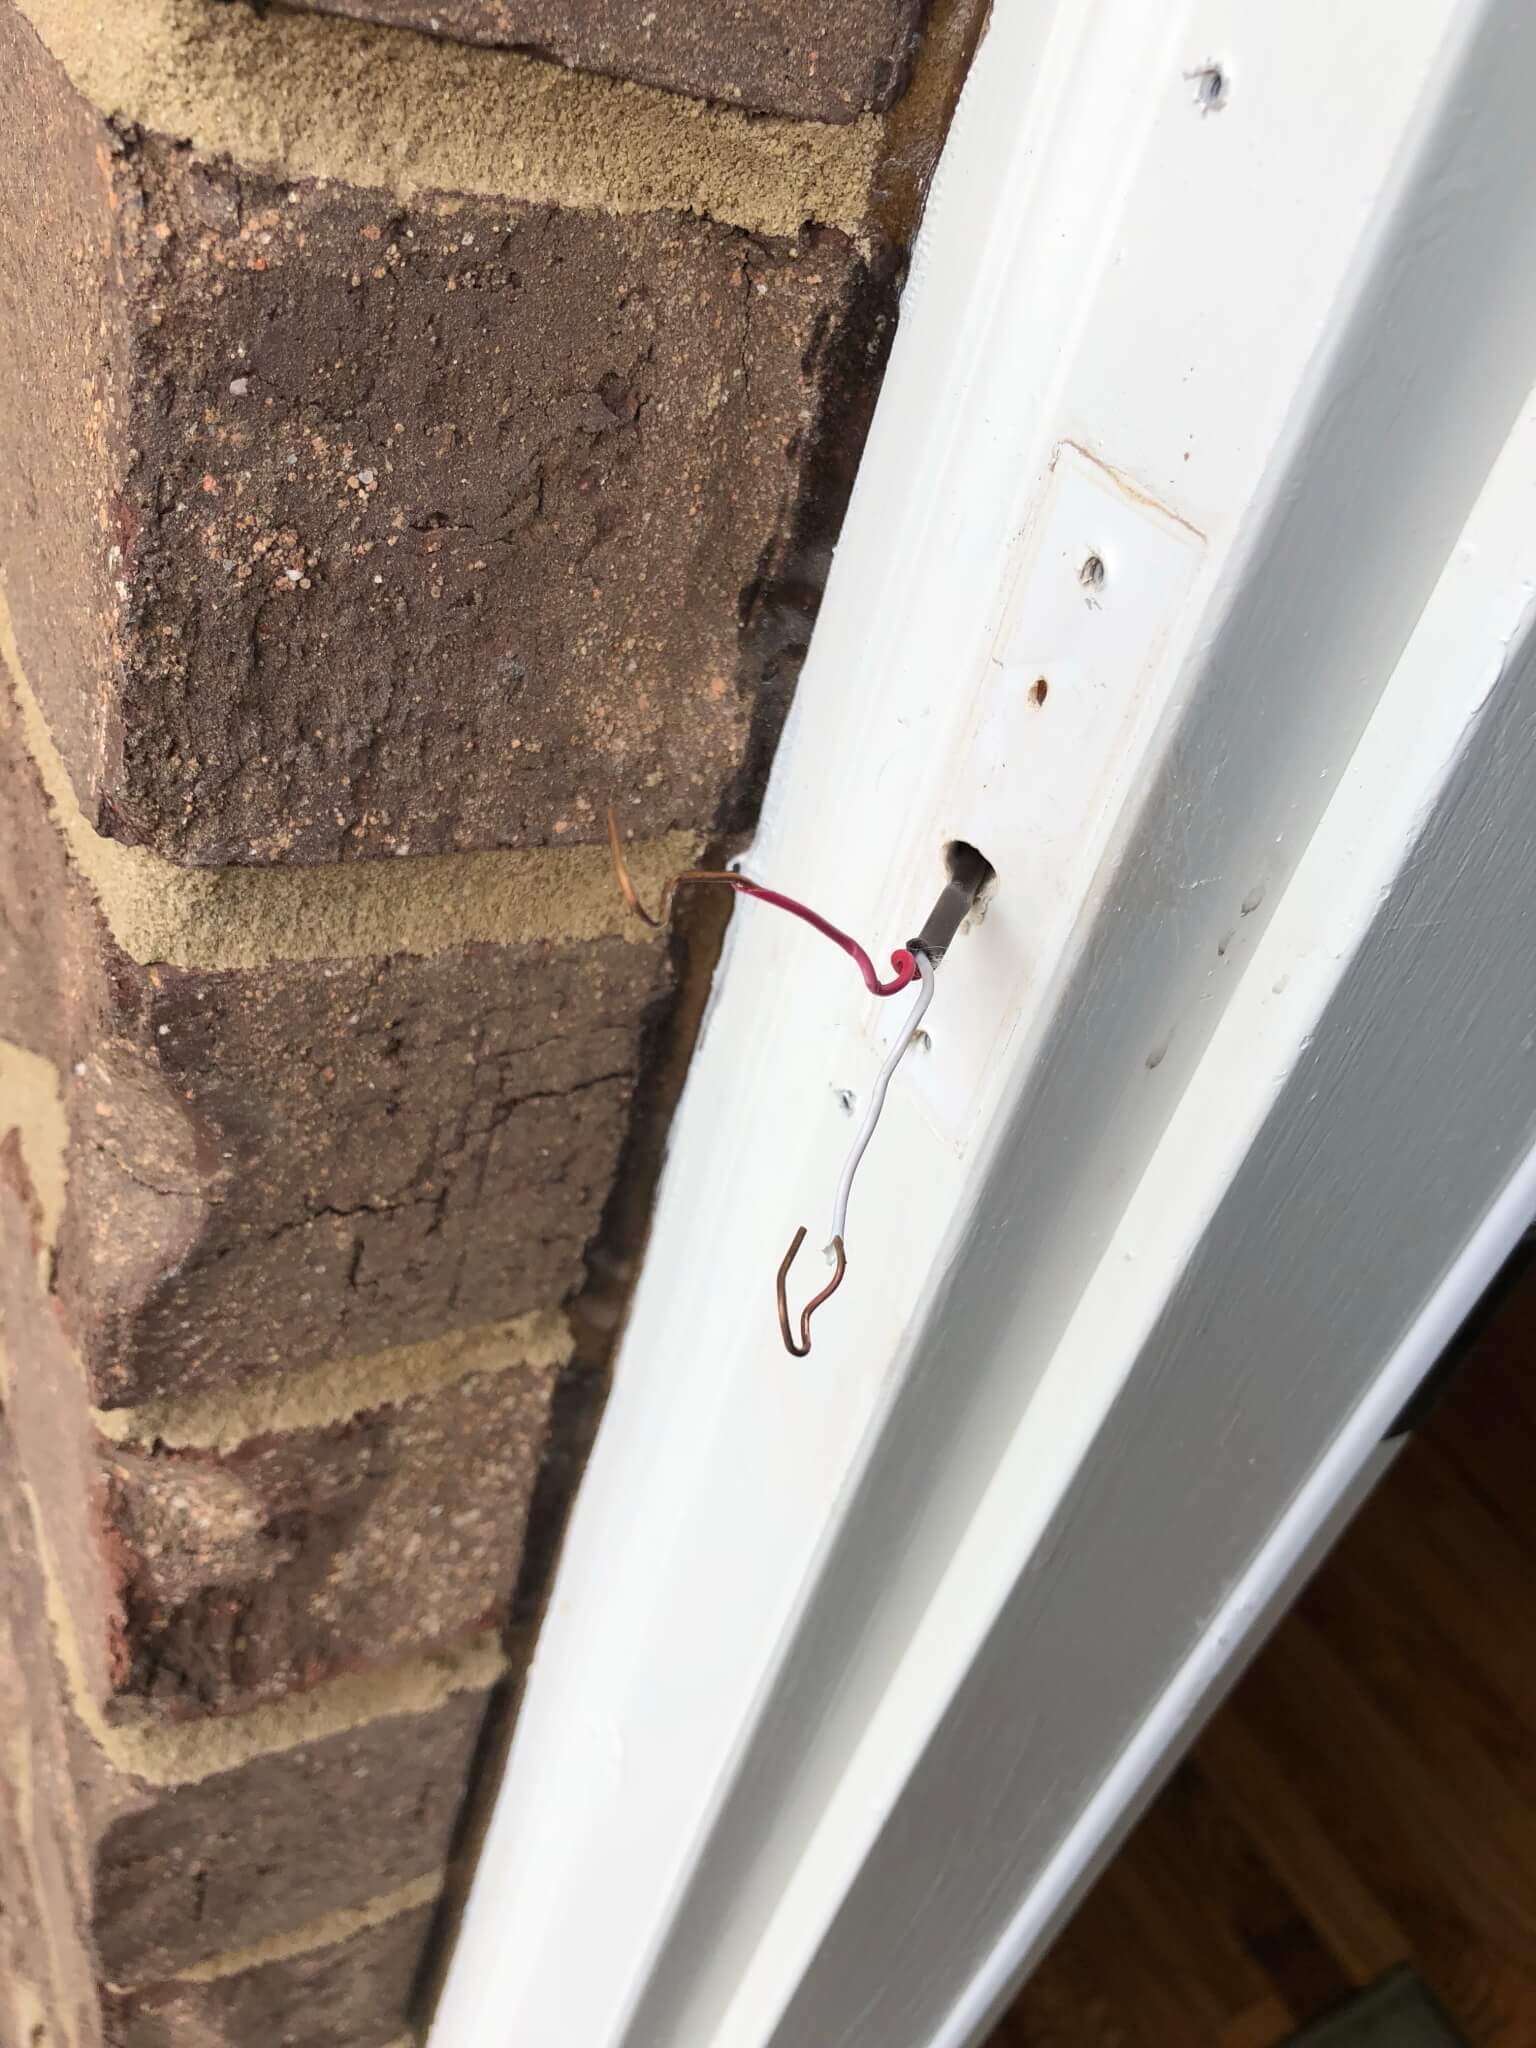 Installing The Nelly Security Wifi Video Doorbell Automated Home Party Household Wiring Now You Just Need To Connect Everything Ive See Says Way Wires Are Connected Dont Matter But When I Mine